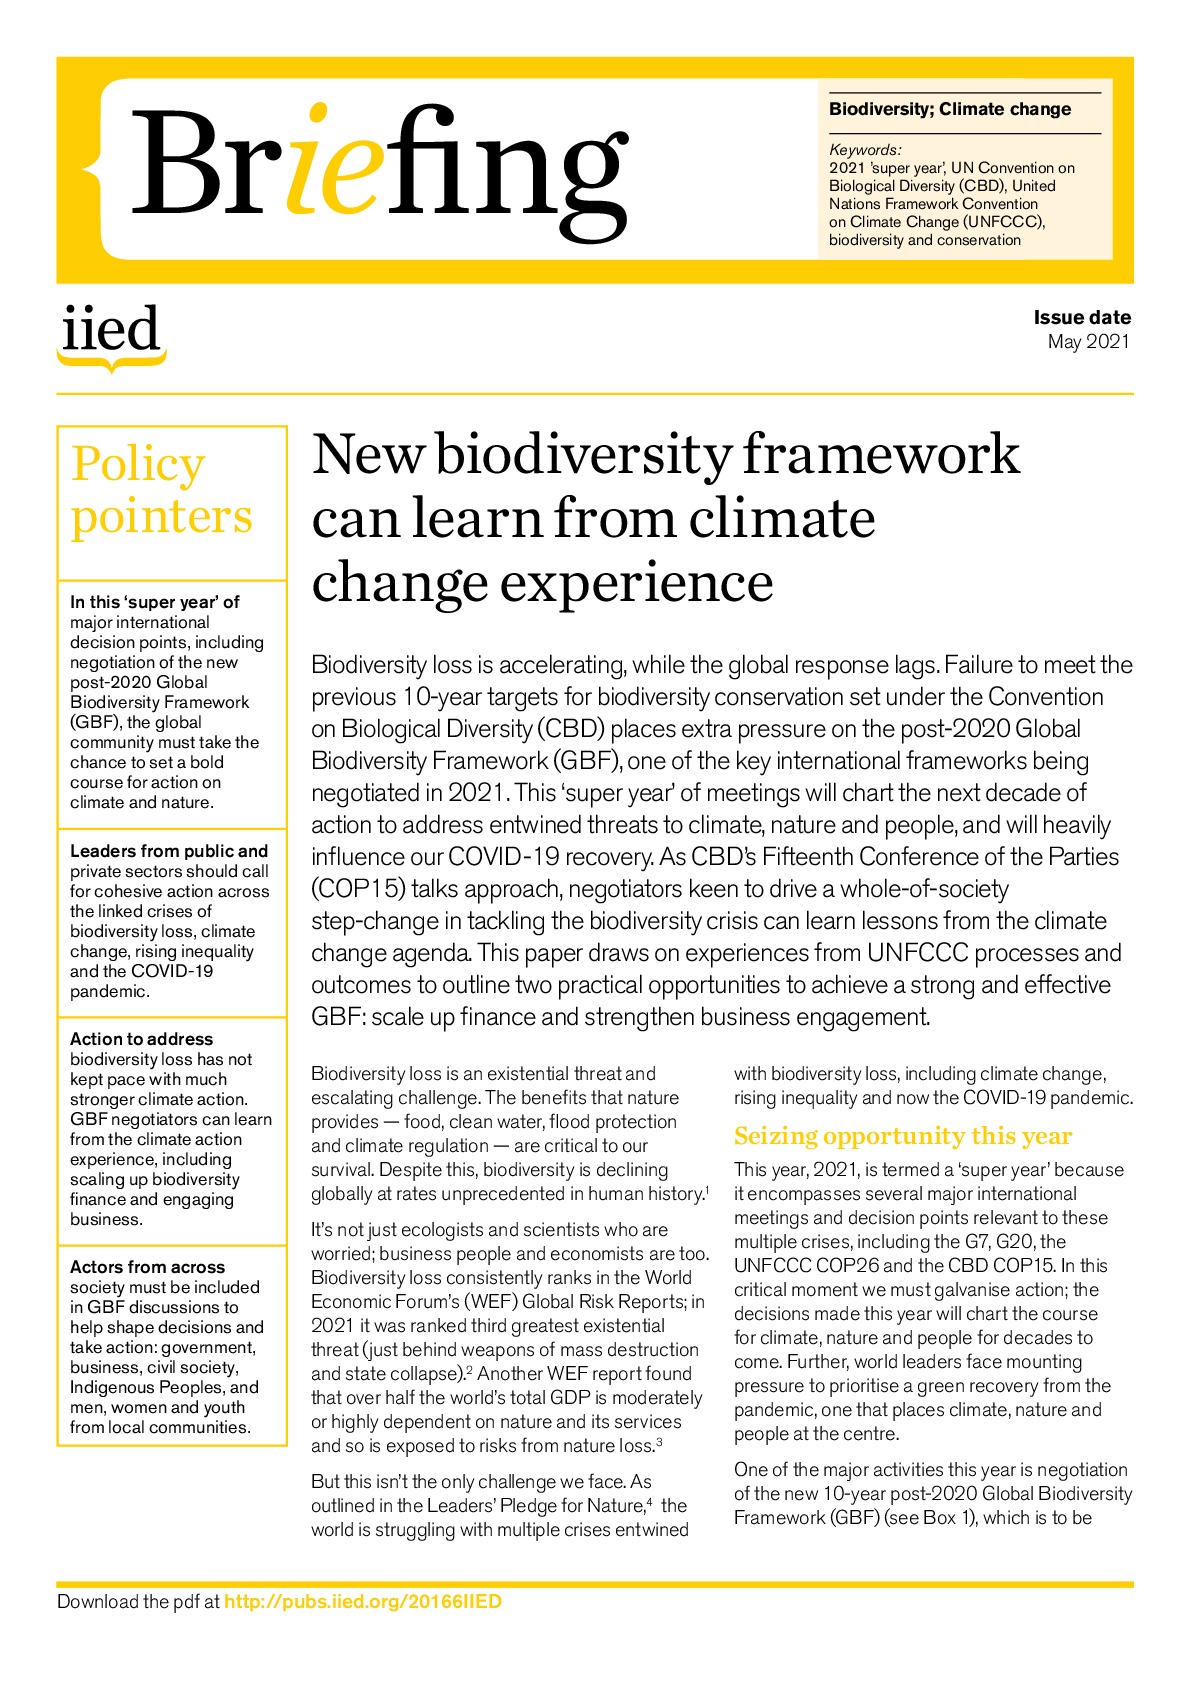 New biodiversity framework can learn from climate change experience